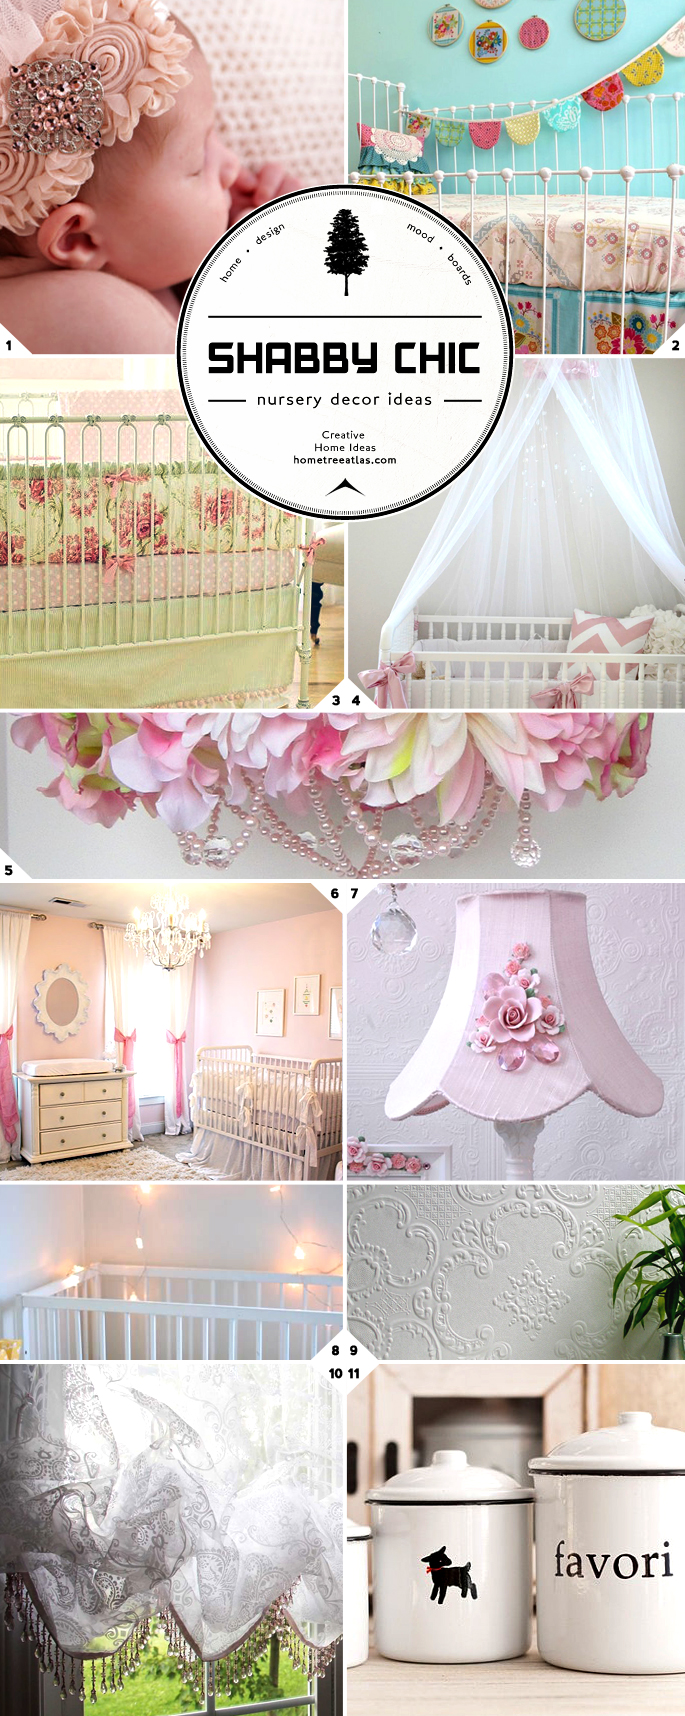 baby sleeps shabby chic nursery decor ideas home tree atlas. Black Bedroom Furniture Sets. Home Design Ideas